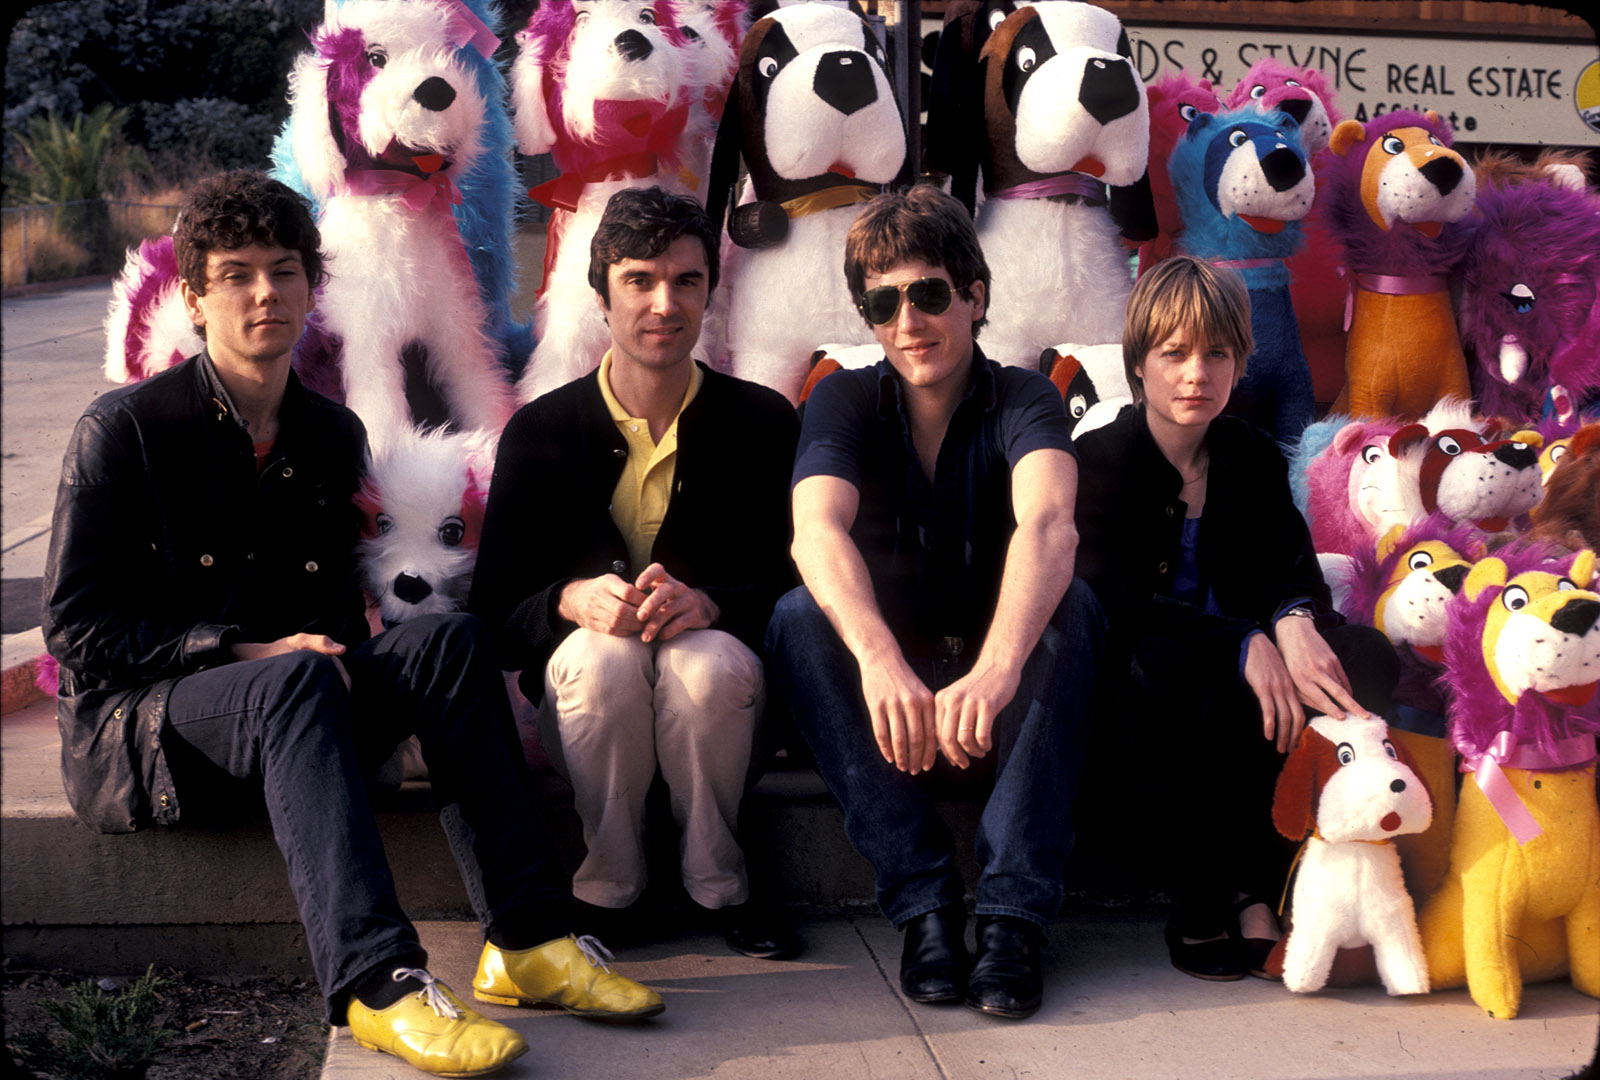 Jerry Harrison, David Byrne, Chris Frantz, and Tina Weymouth of Talking Heads